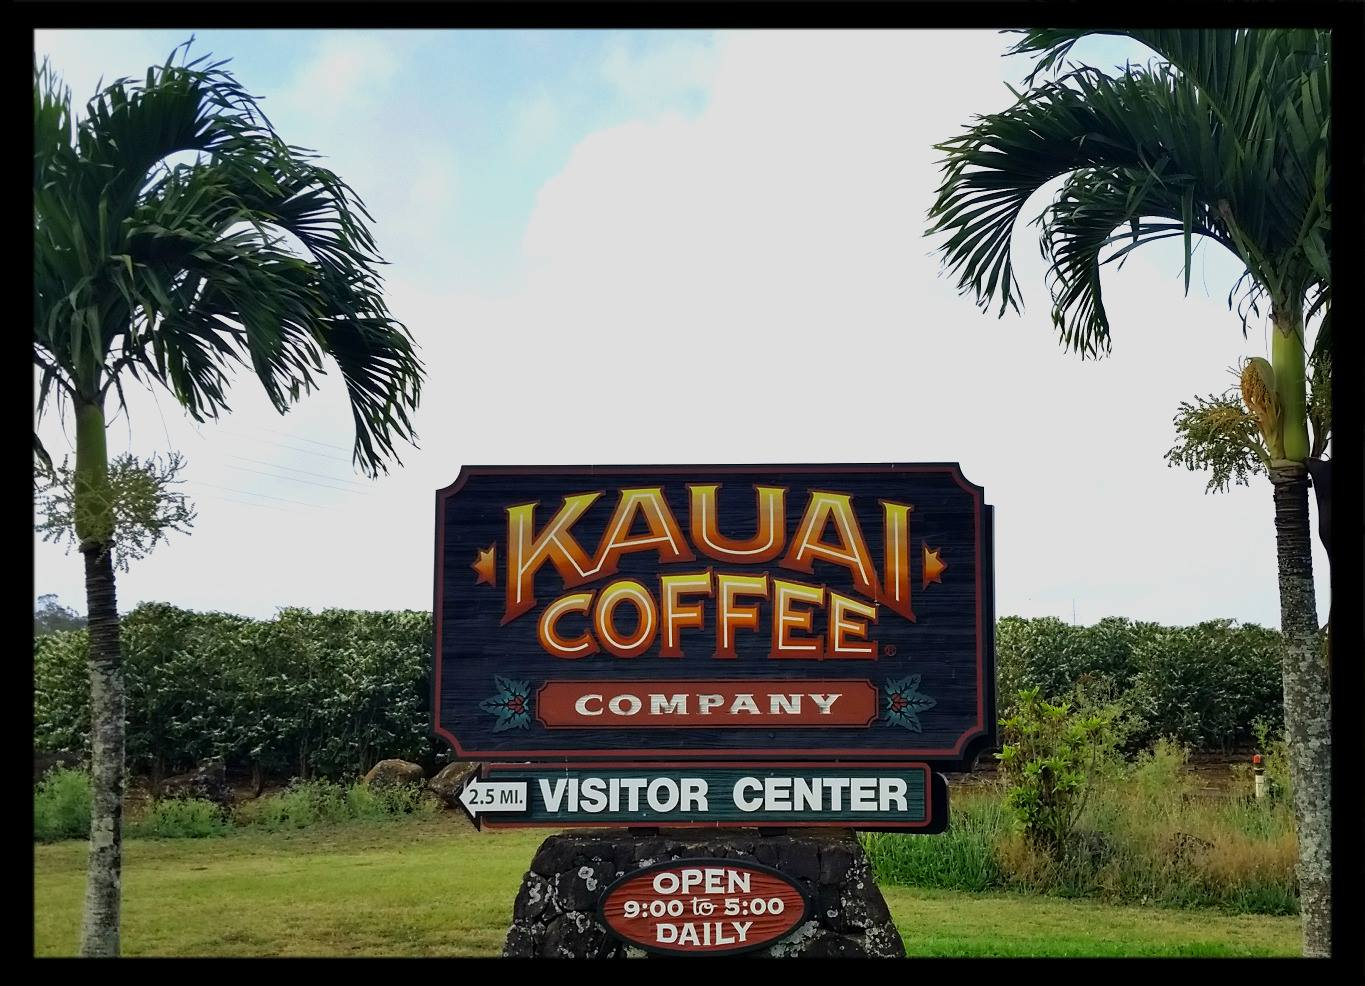 Kauai Coffee Co FB